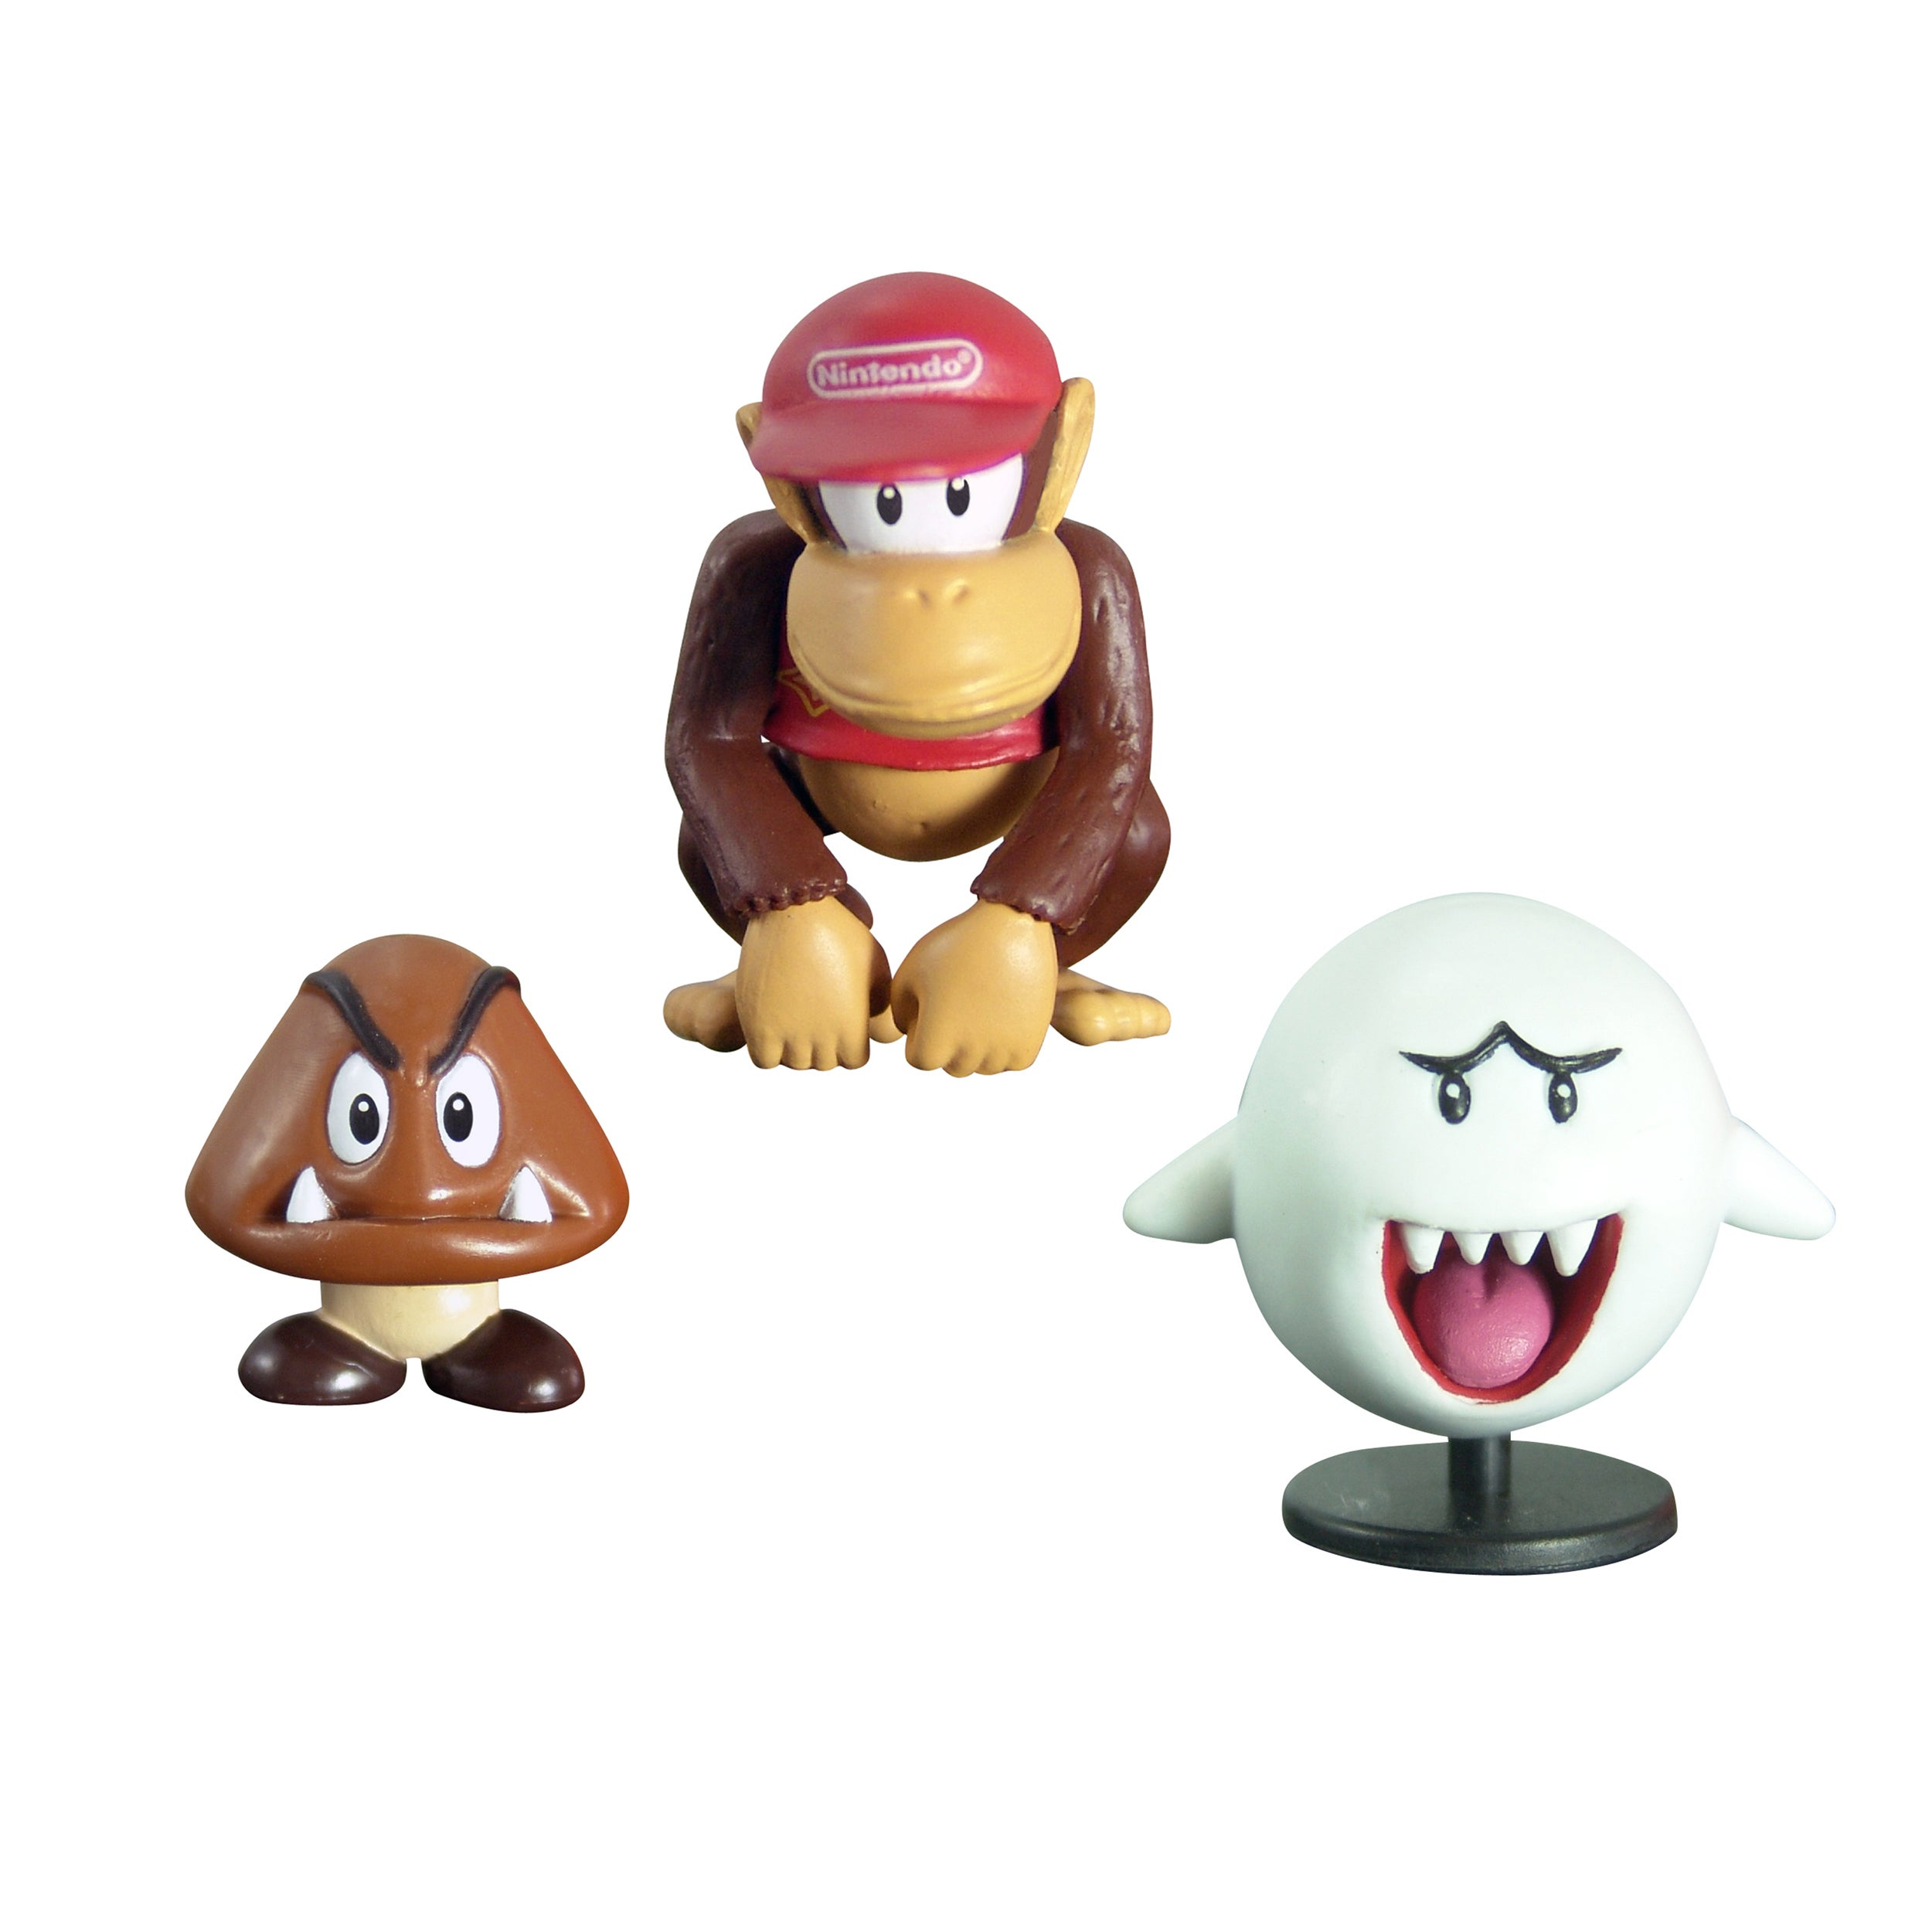 Nintendo Super Mario Brothers Diddy and Goomba at Sears.com